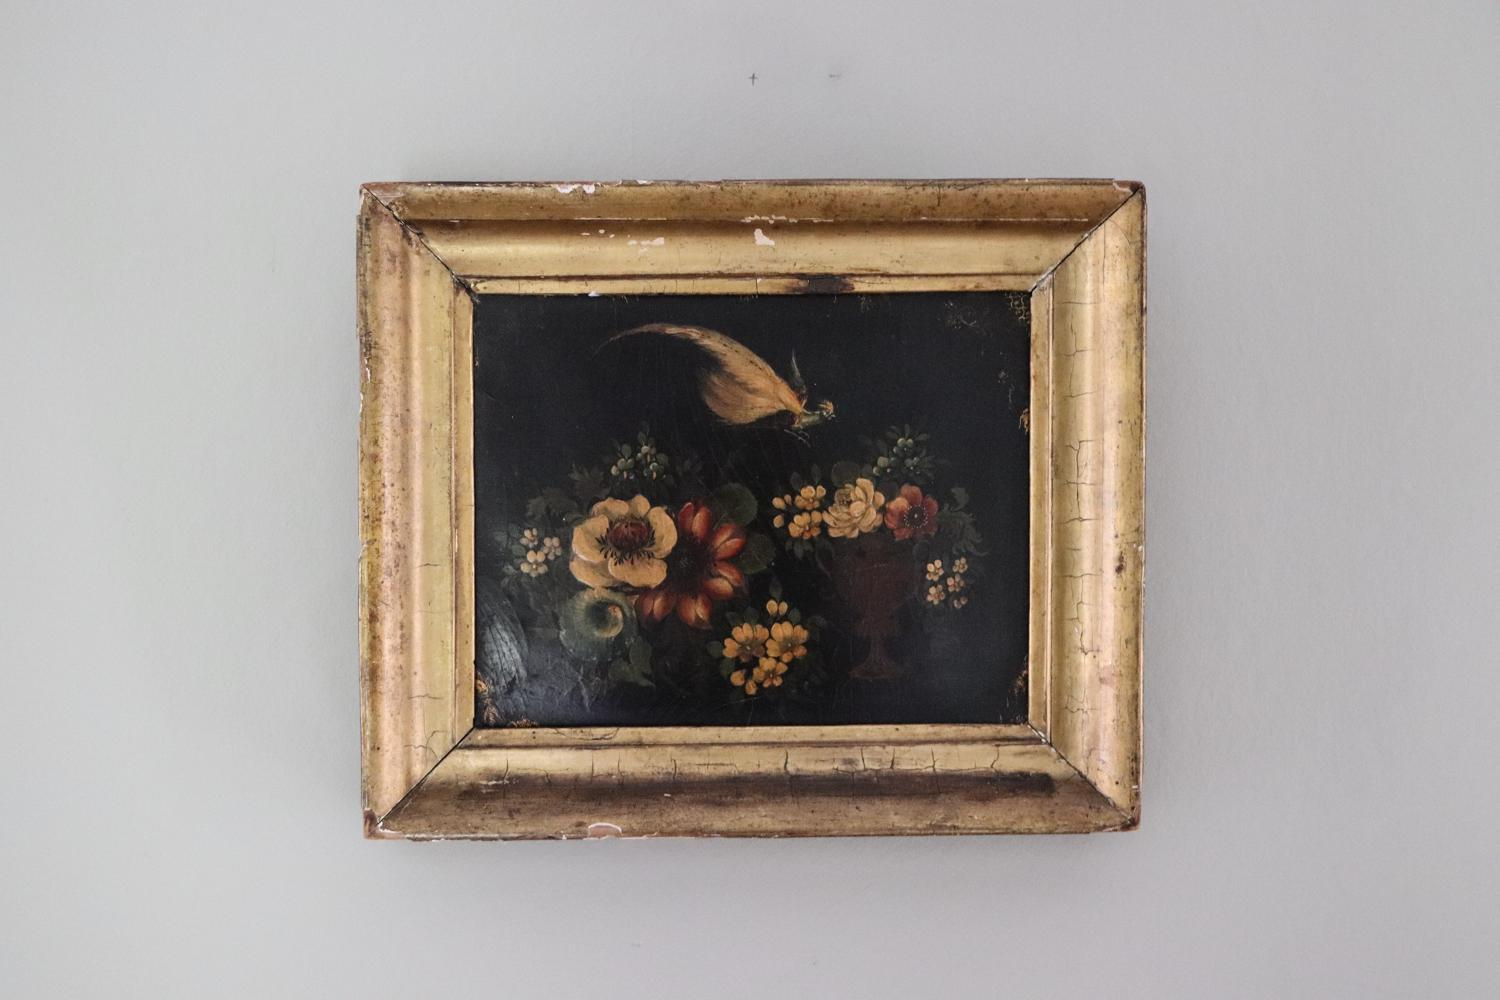 Painted wooden panel in gilt frame